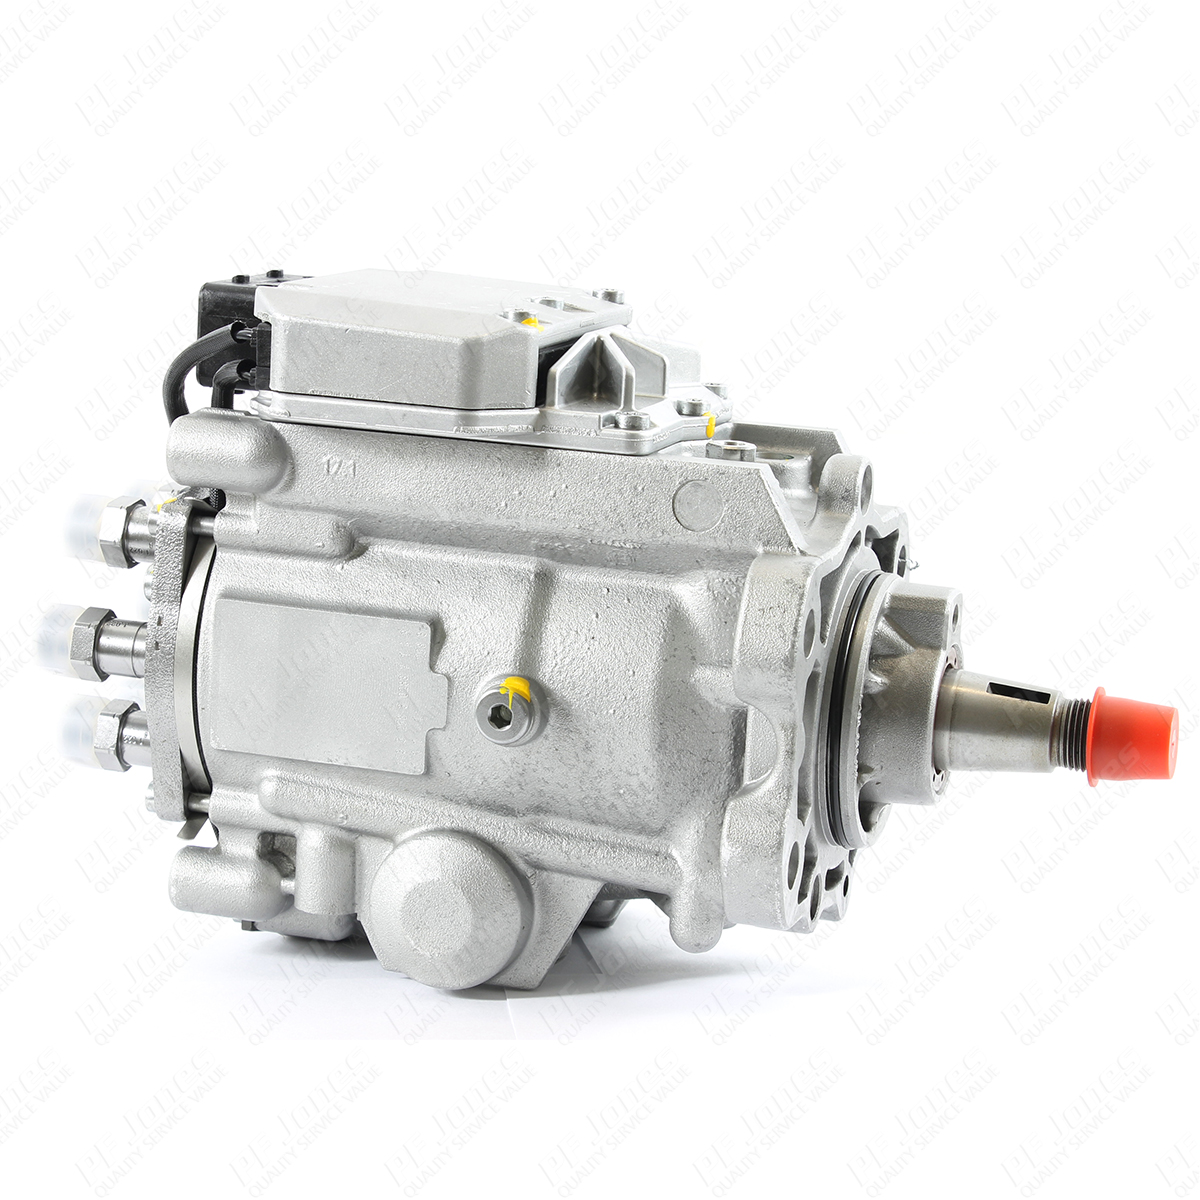 Volvo Engines Fuel Pump D12 Engine System Wire Diagrams. Volvo Fl 5 2000 2006 Reconditioned Bosch Diesel Fuel Pump 0470506017 D12 Engine. Volvo. Volvo D12 Engine Fuel Diagram At Scoala.co